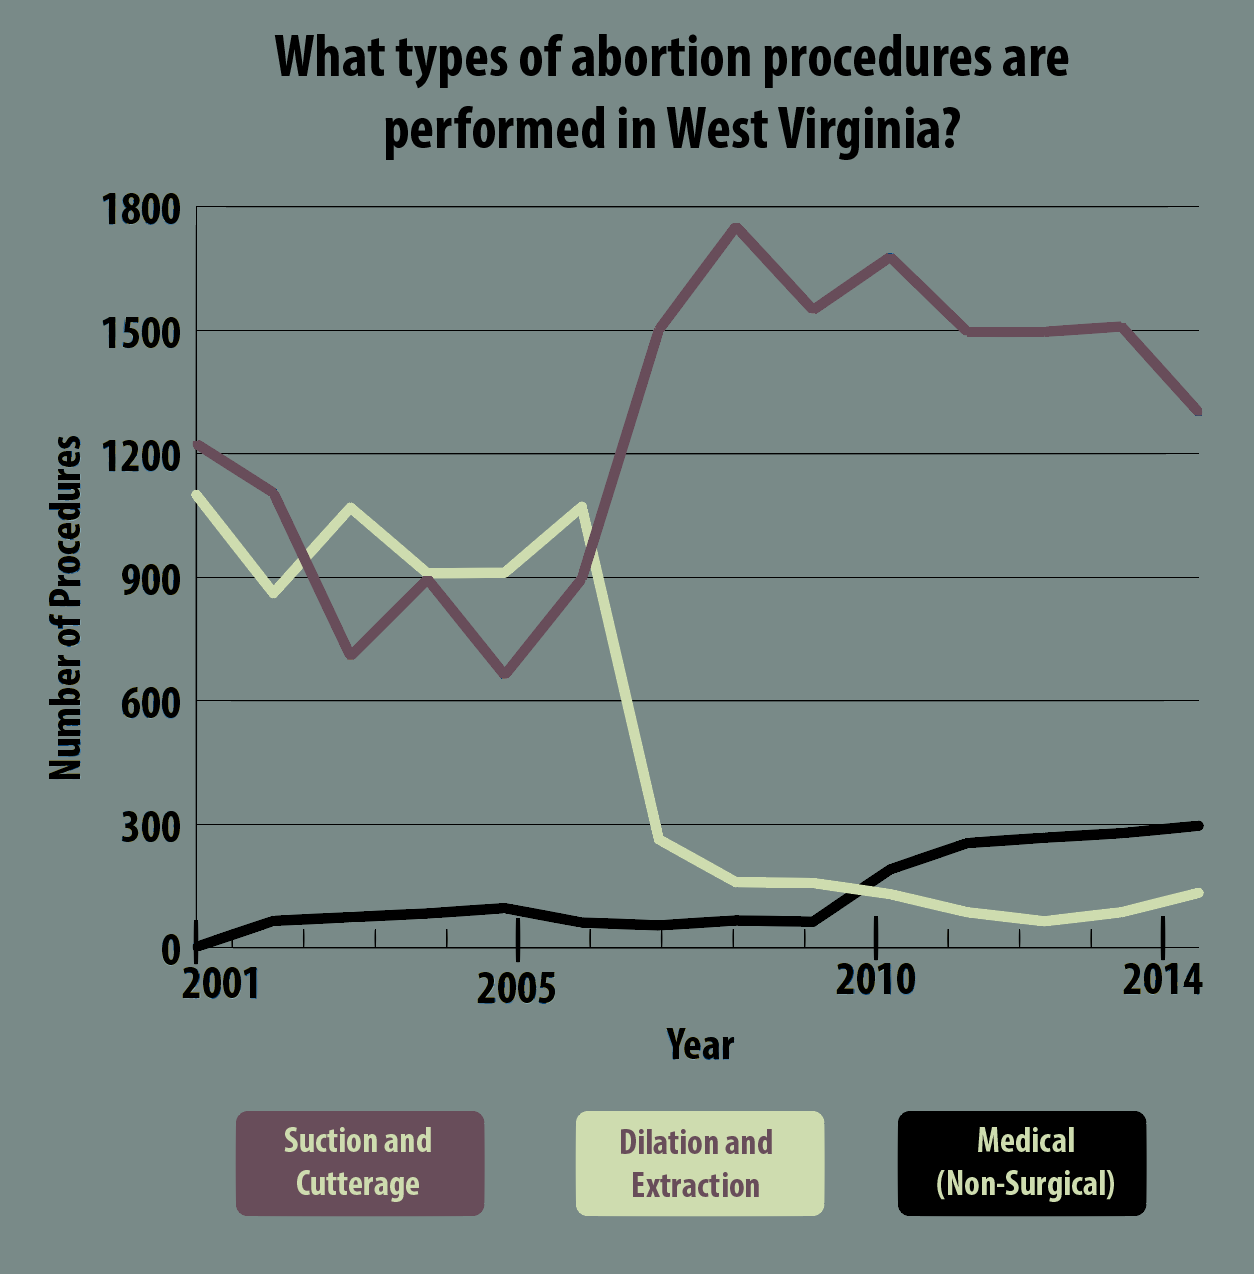 What type of abortion procedures are performed in West Virginia?